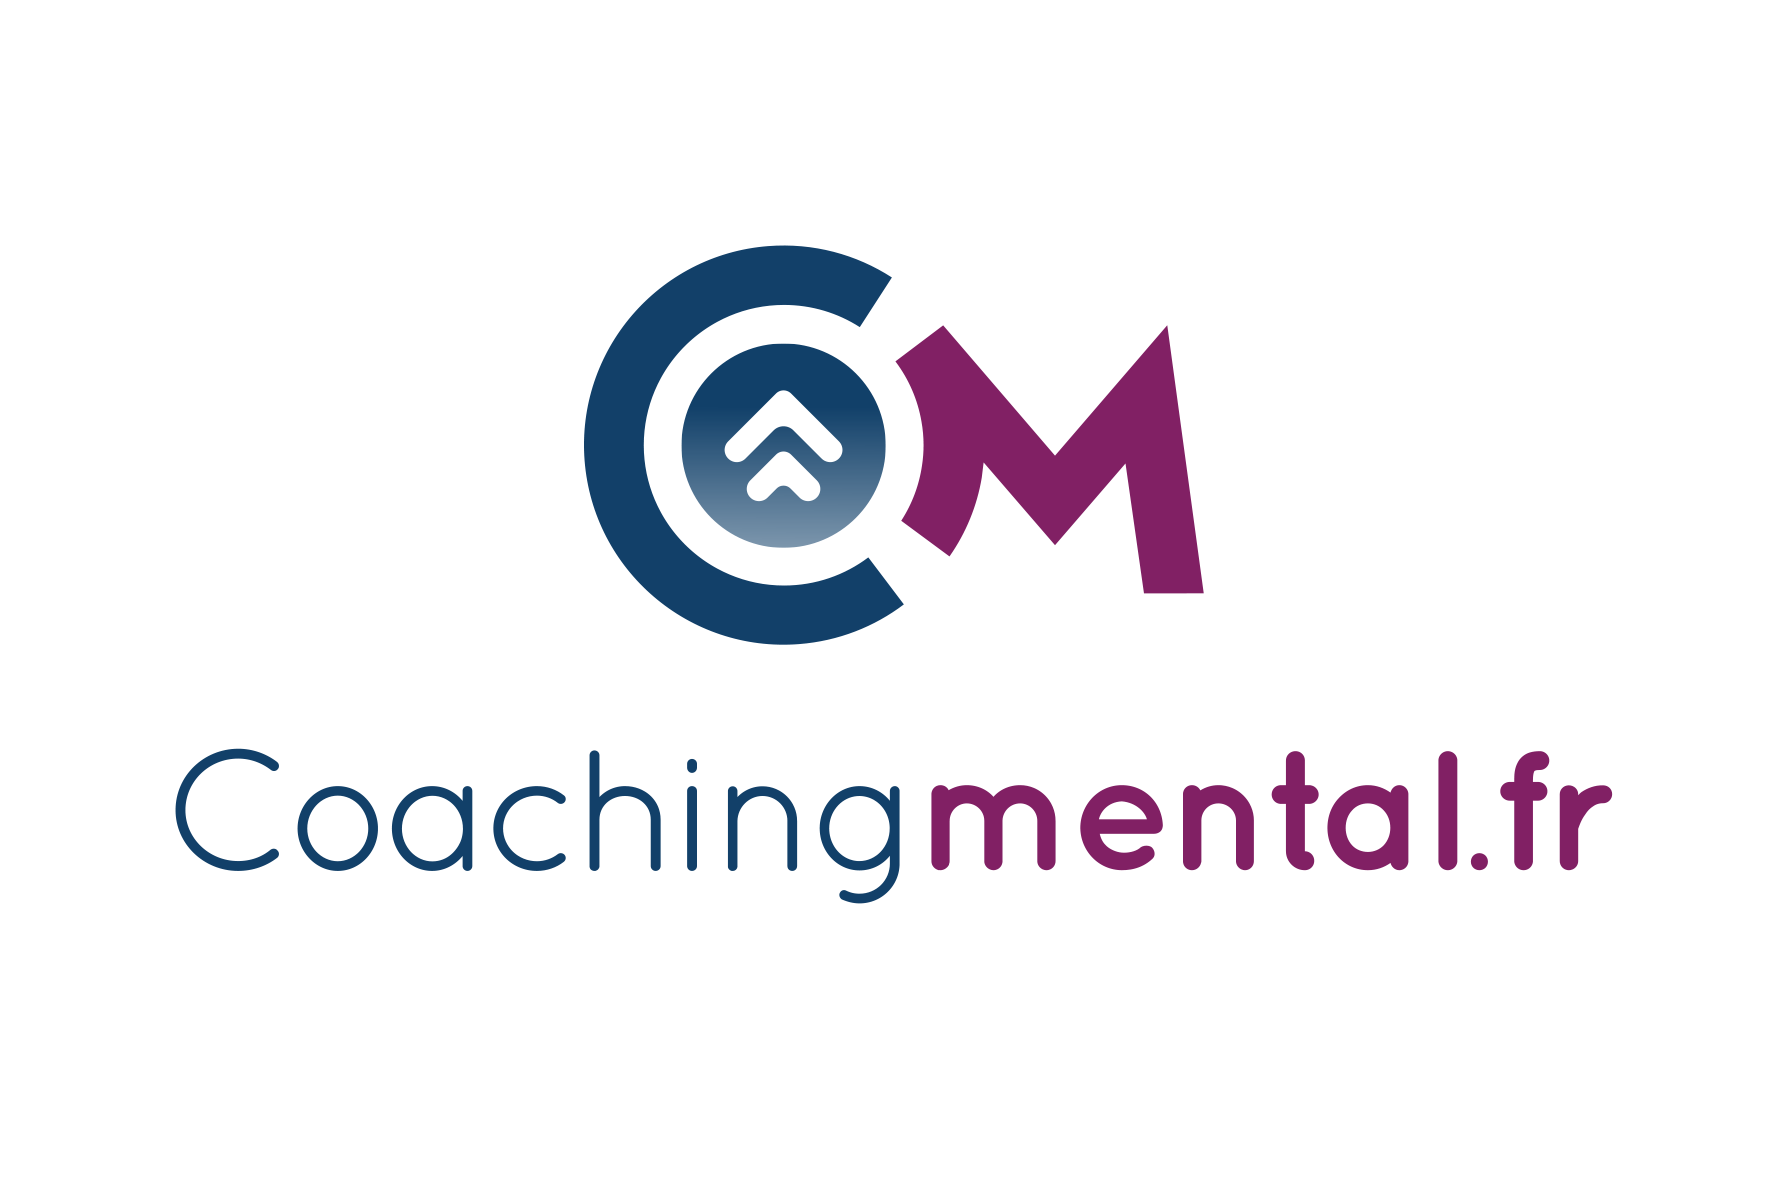 COACHINGMENTAL.FR